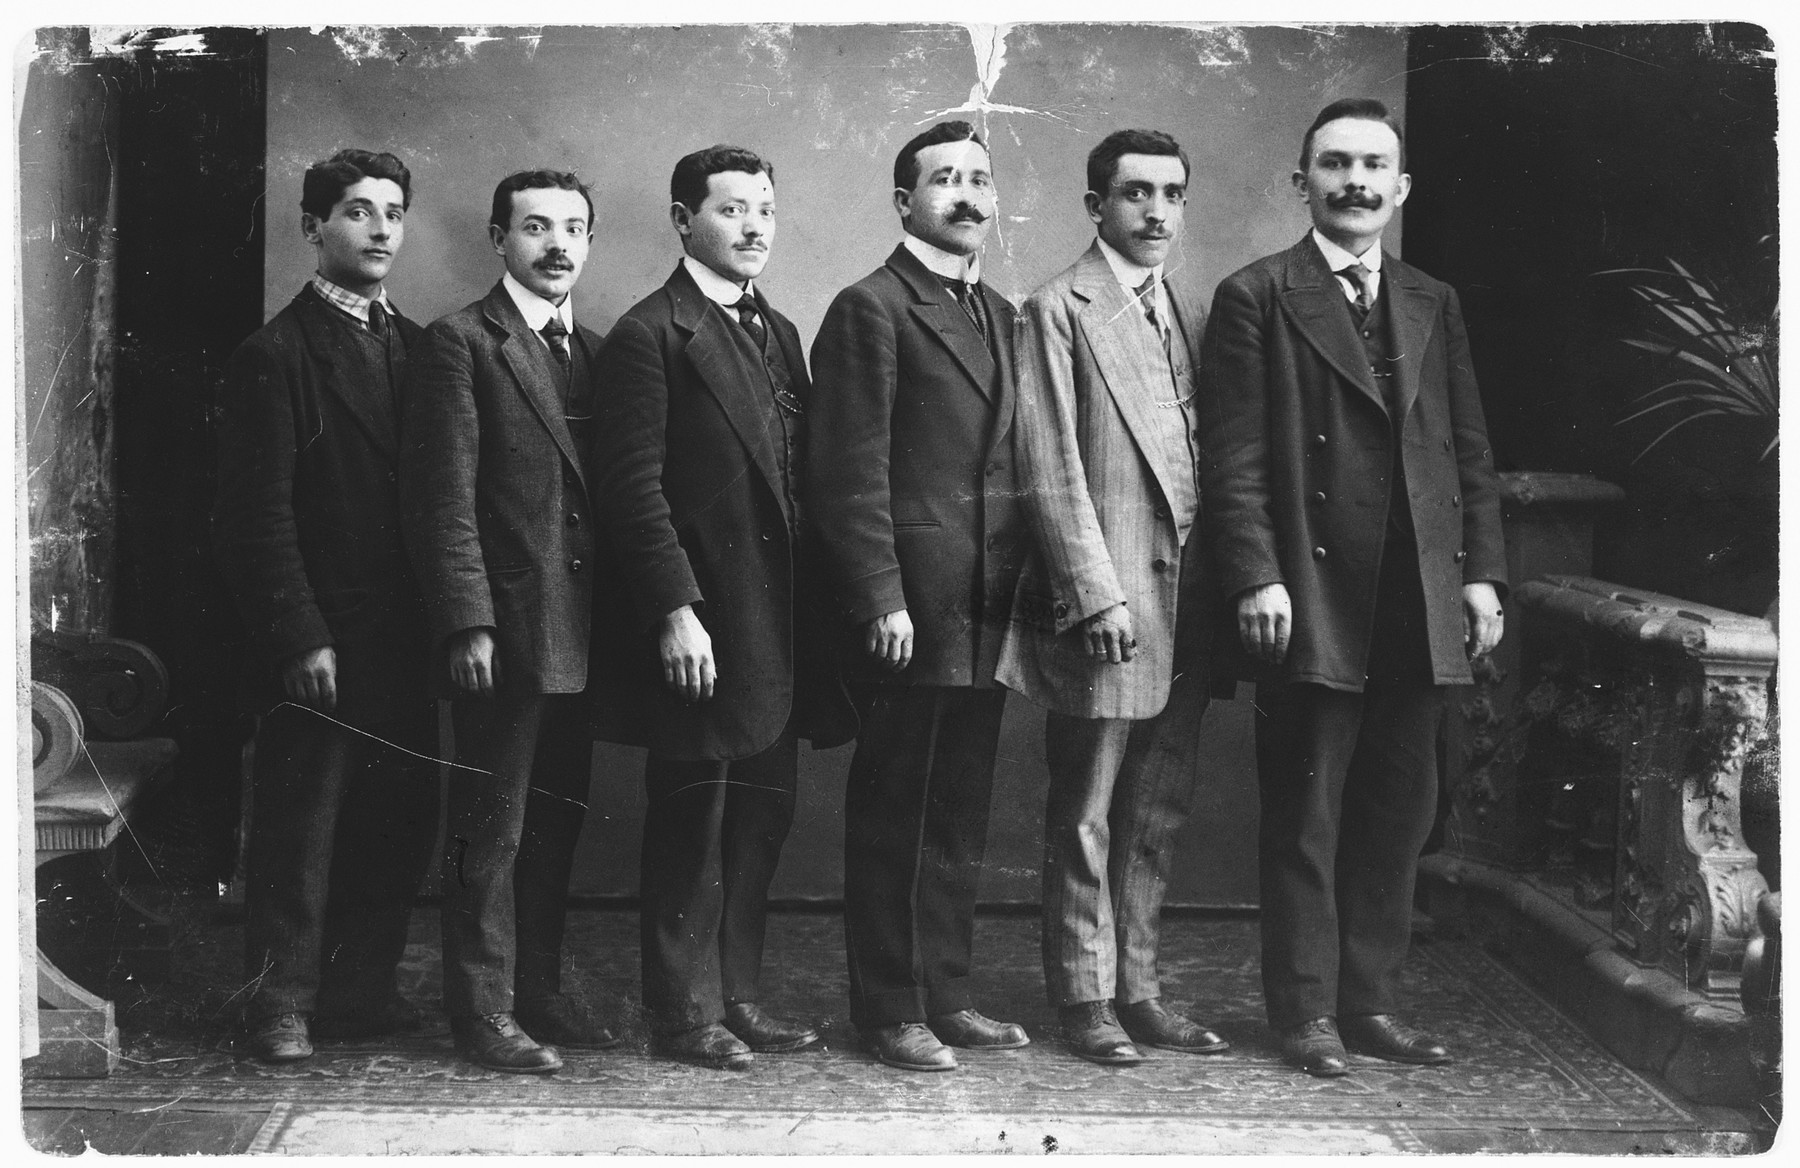 Joseph Diament (second from the right), the owner of a tailor shop in Copenhagen, poses with five of his co-workers.  Also pictured is Nachmendel Lystmann (second from the left).